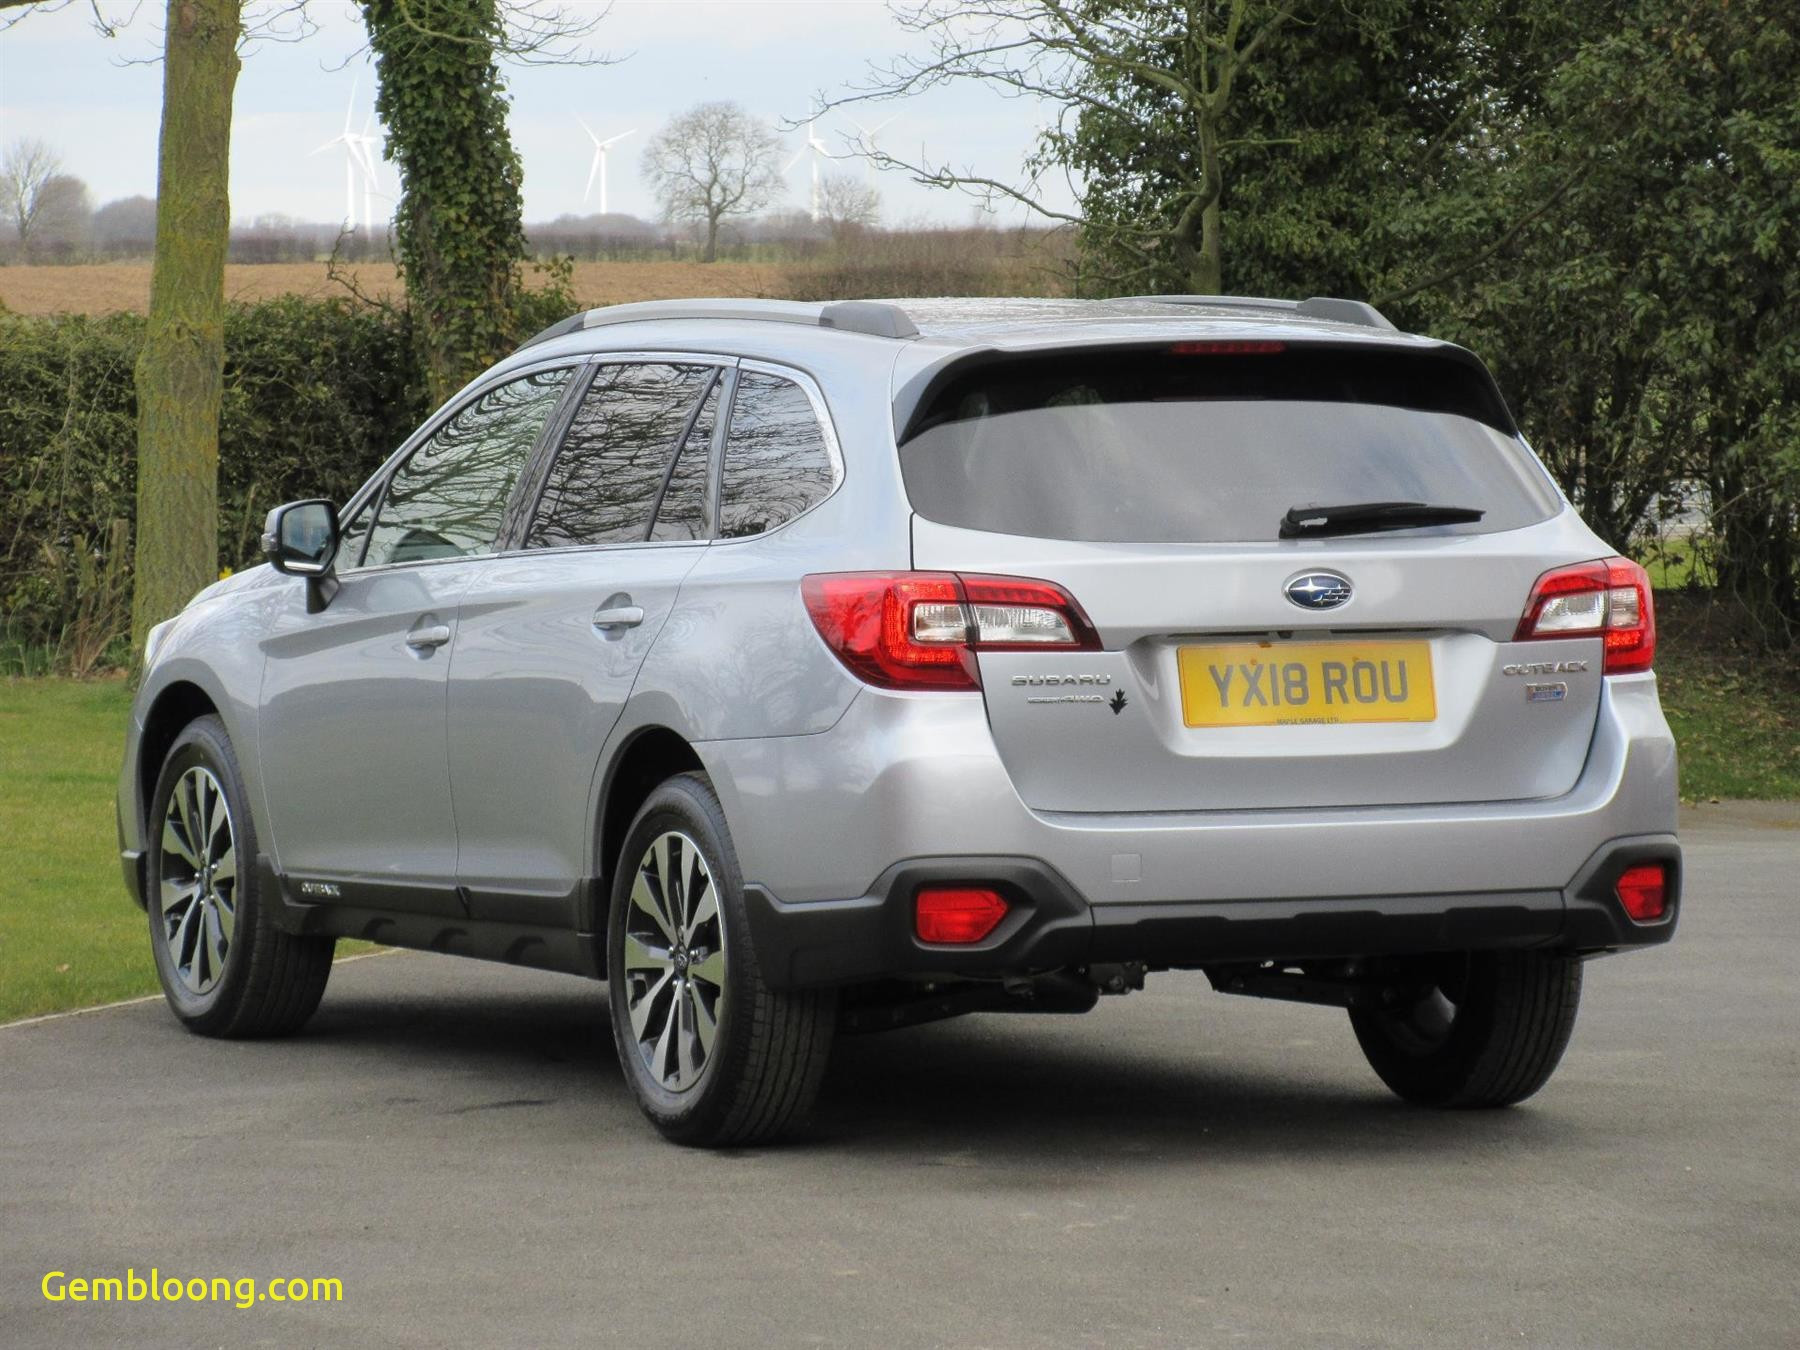 sell used car to dealer elegant used cars near me private seller unique used 2018 subaru